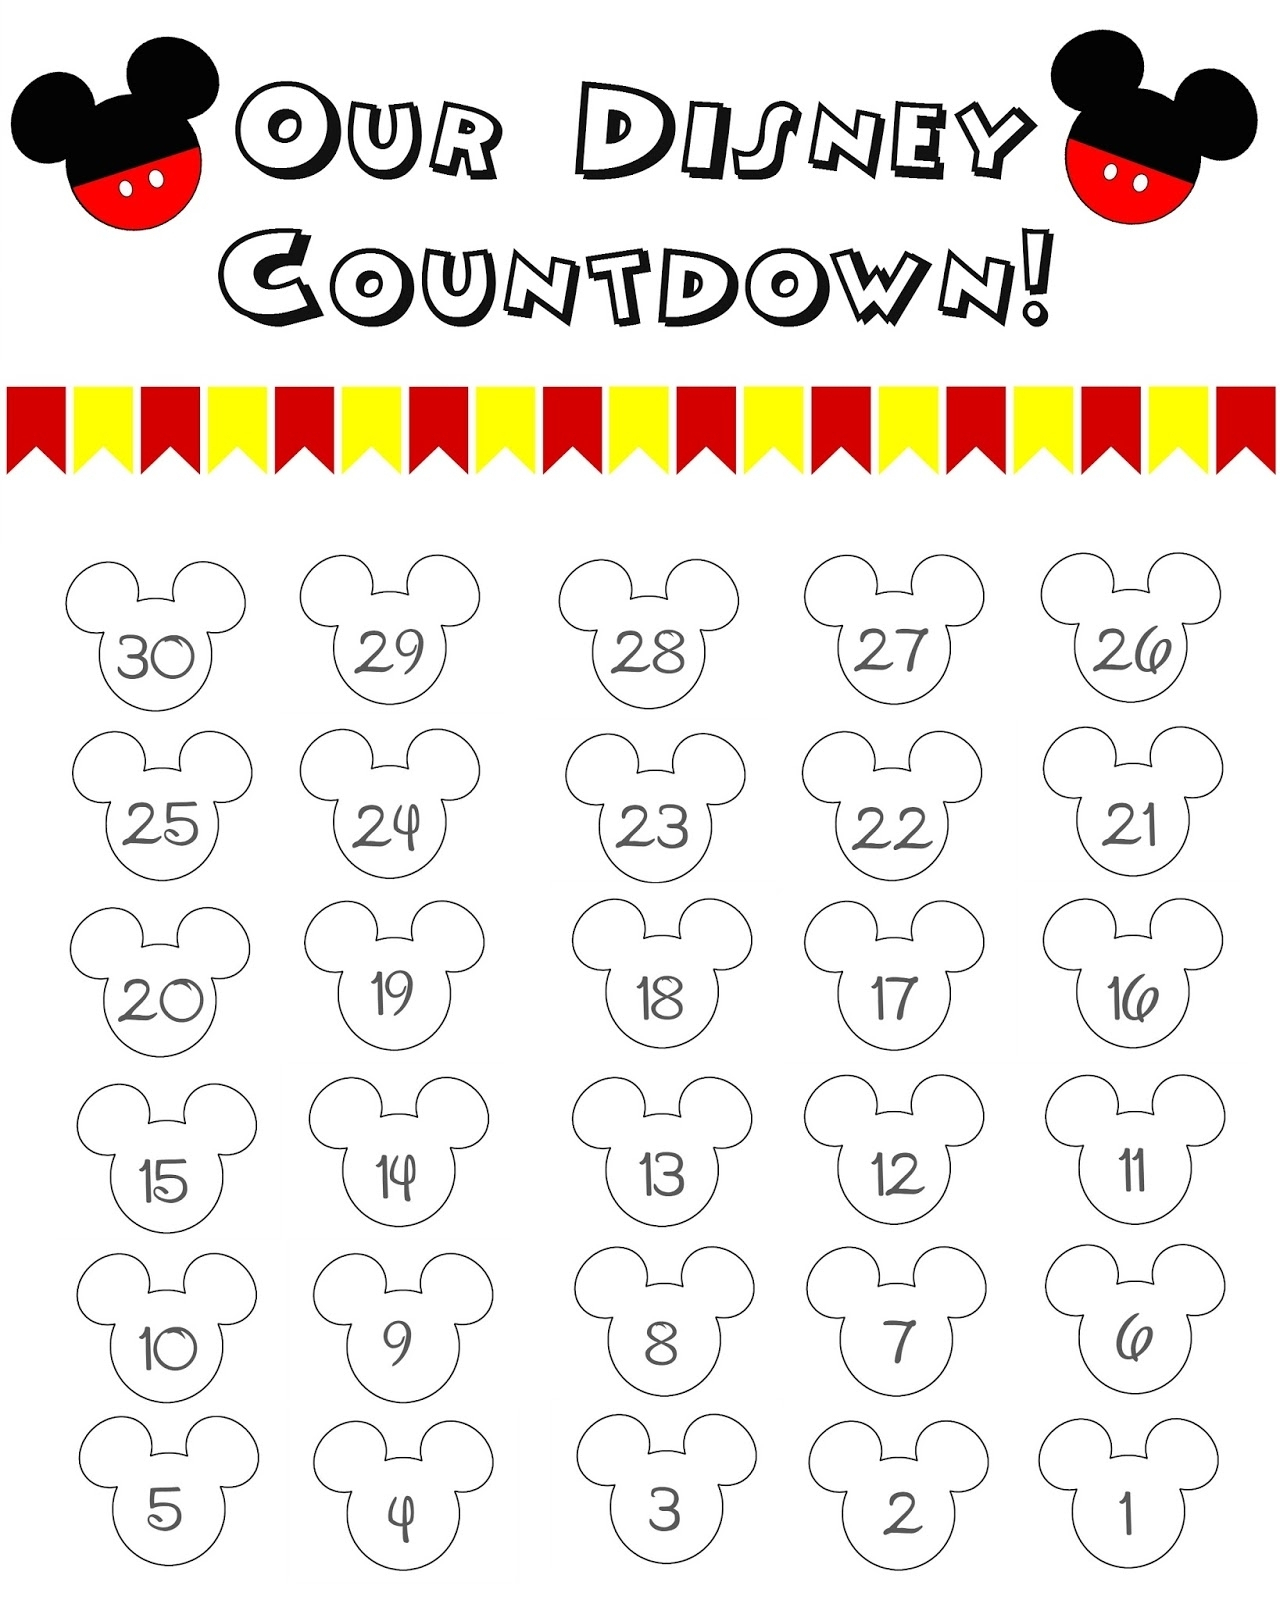 99 Days To Disney Printable Calendar  Calendar Inspiration for Disney Printable Calendar